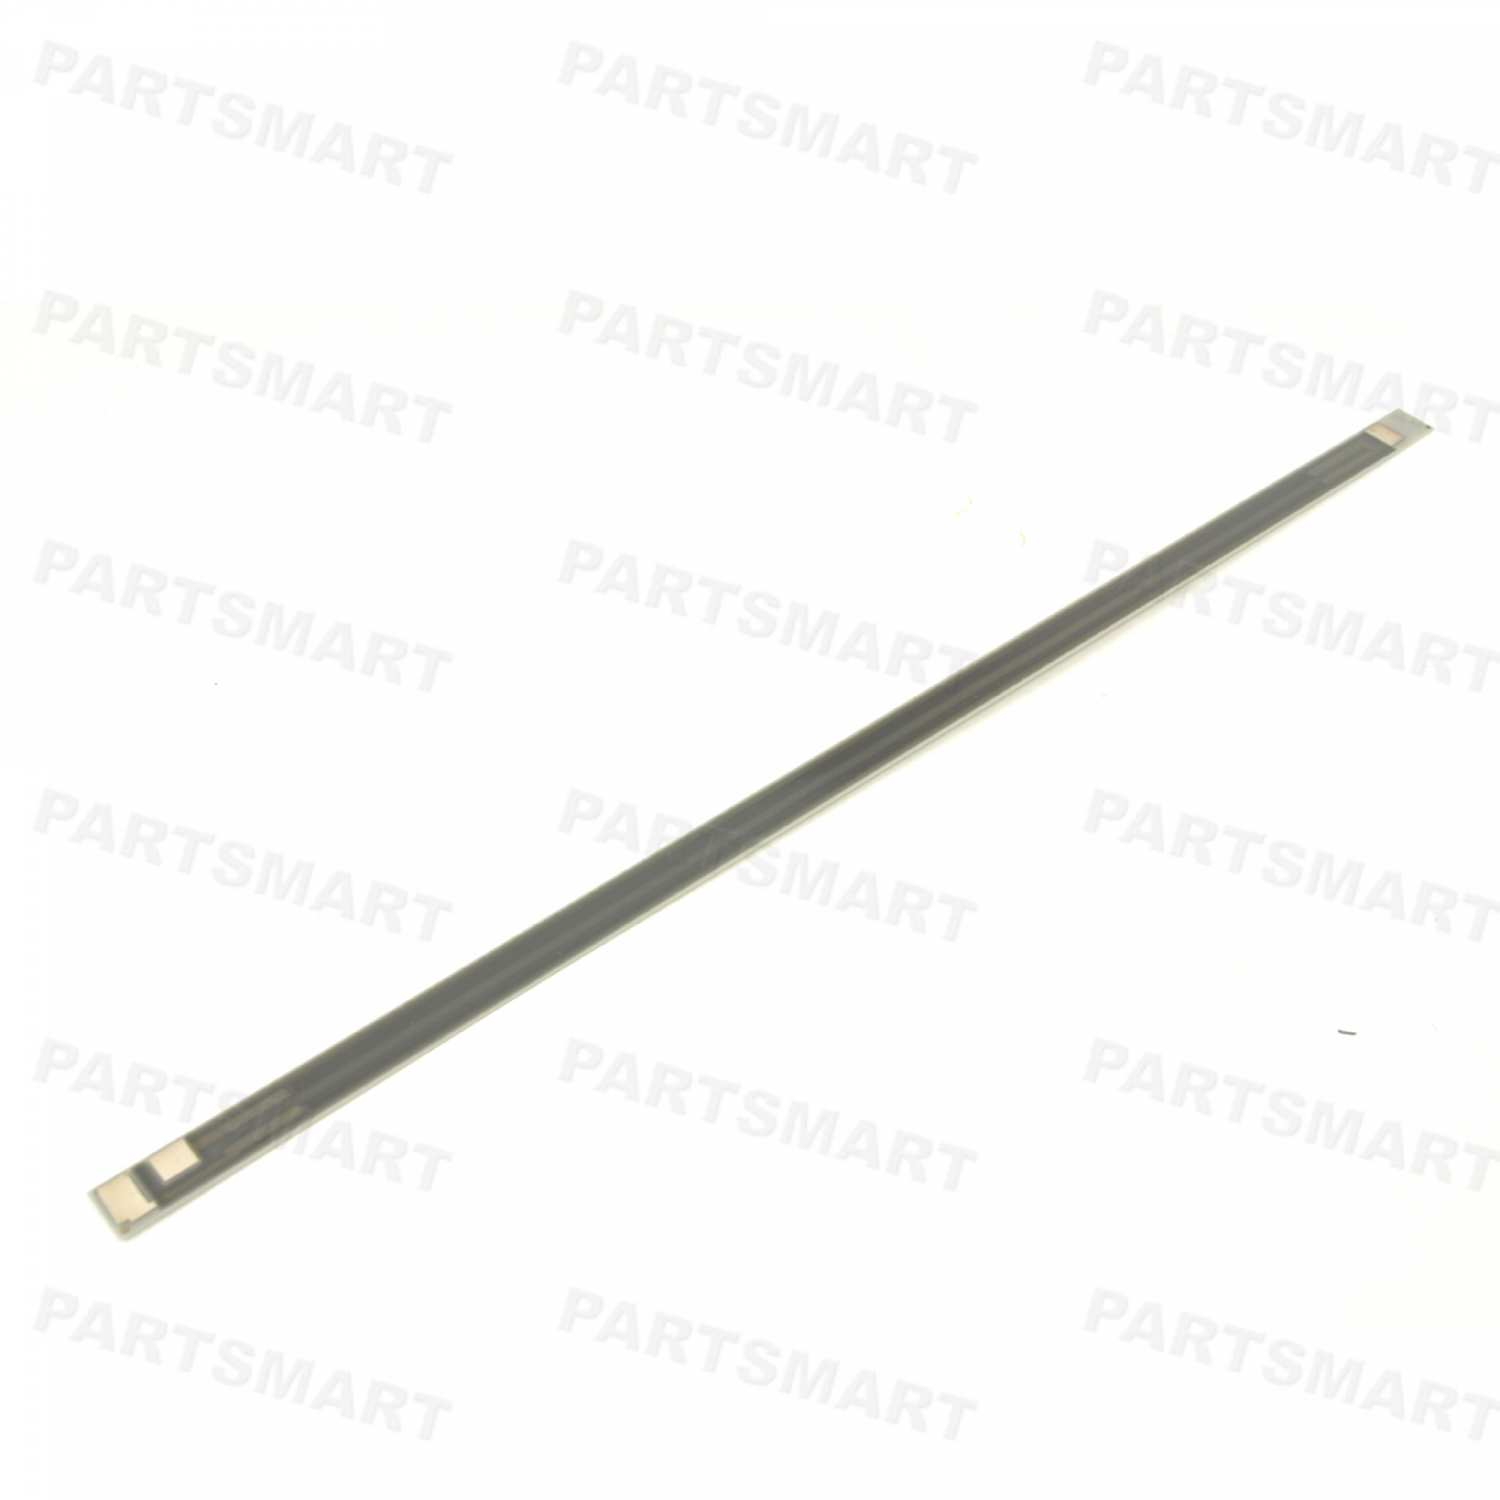 RM1-8396-HE Heating Element (220V) for HP LaserJet Enterprise 600 M601dn, LaserJet Enterprise 600 M601n